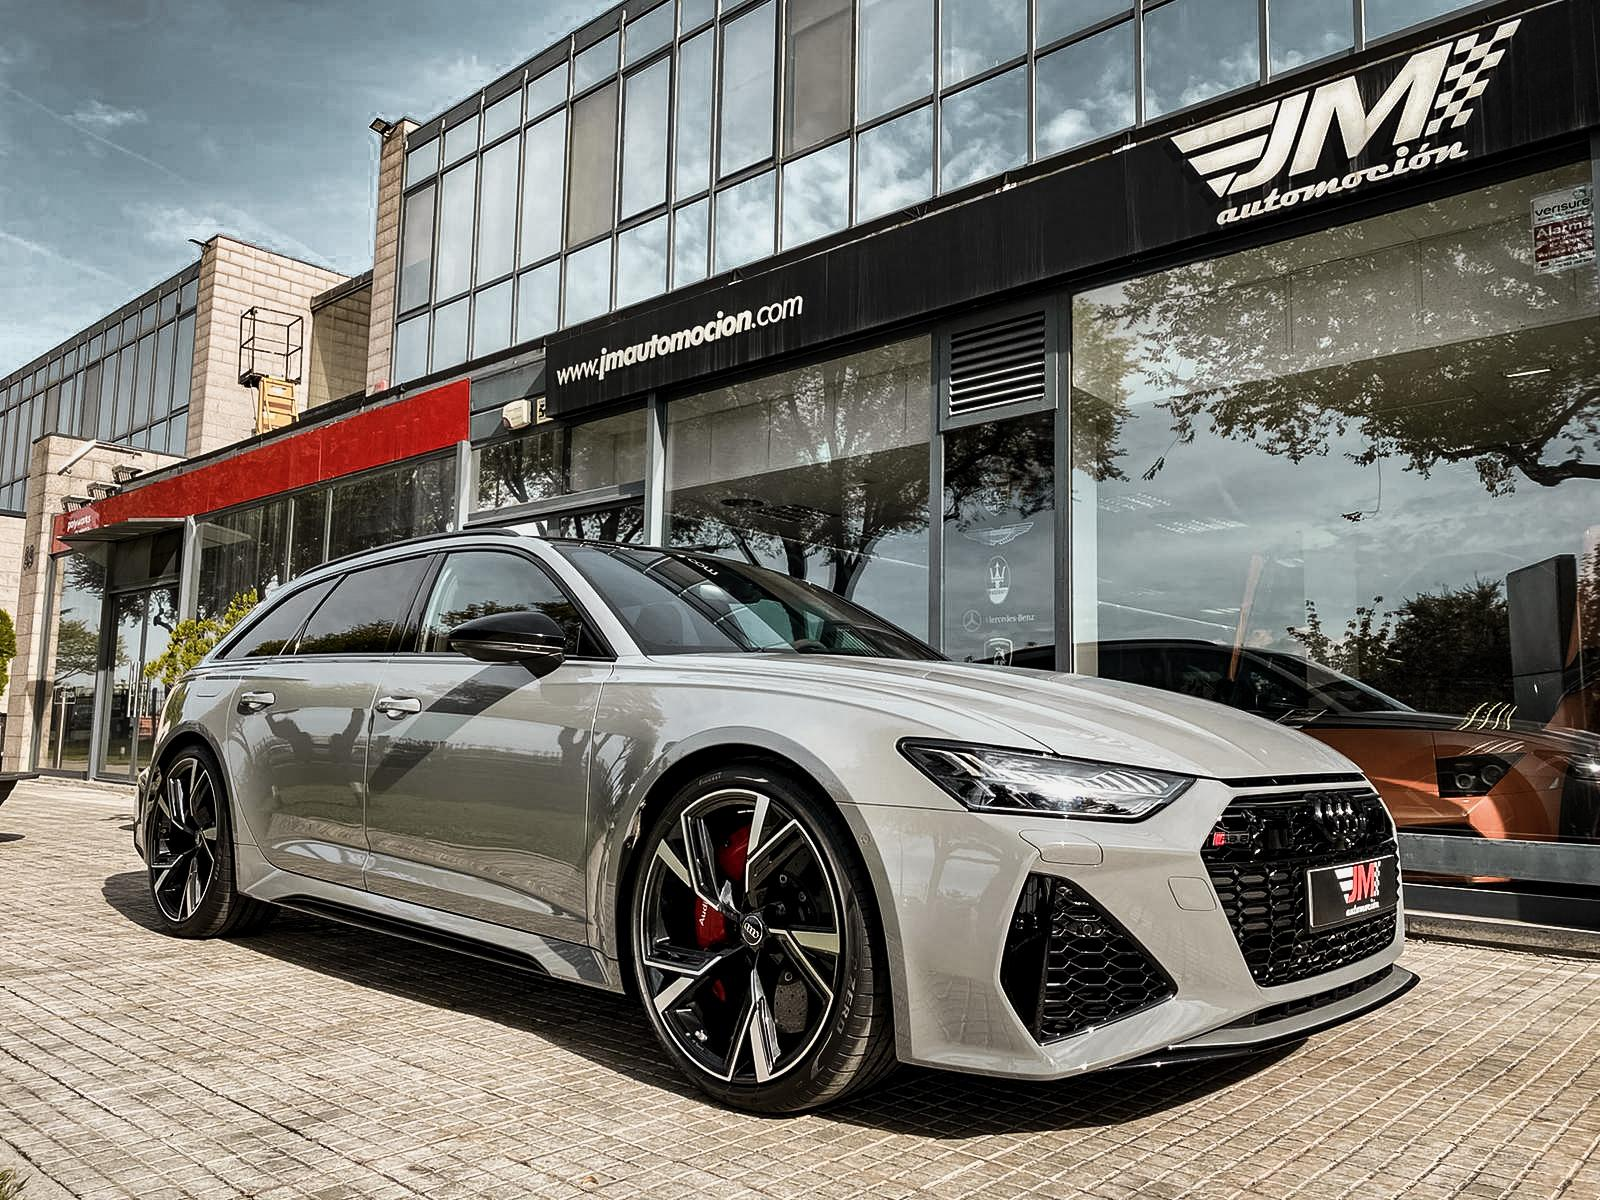 AUDI RS6 AVANT 2020 NARDO GREY -IVA DEDUCIBLE, FULL OPTIONS-